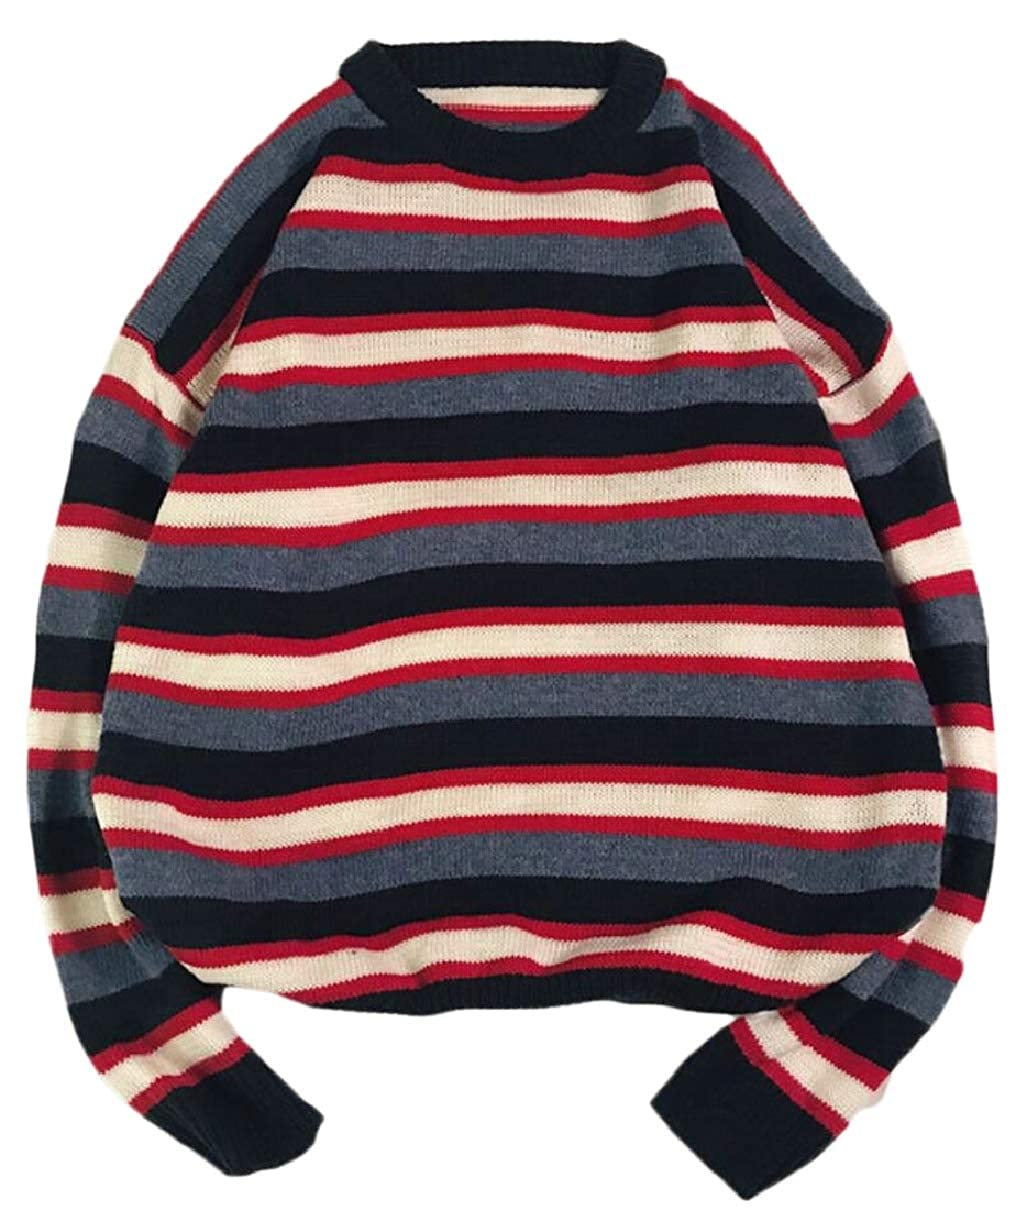 CBTLVSN Mens Slim Fit Stripe Round Neck Fashion Knitted Knitwear Pullover Sweaters